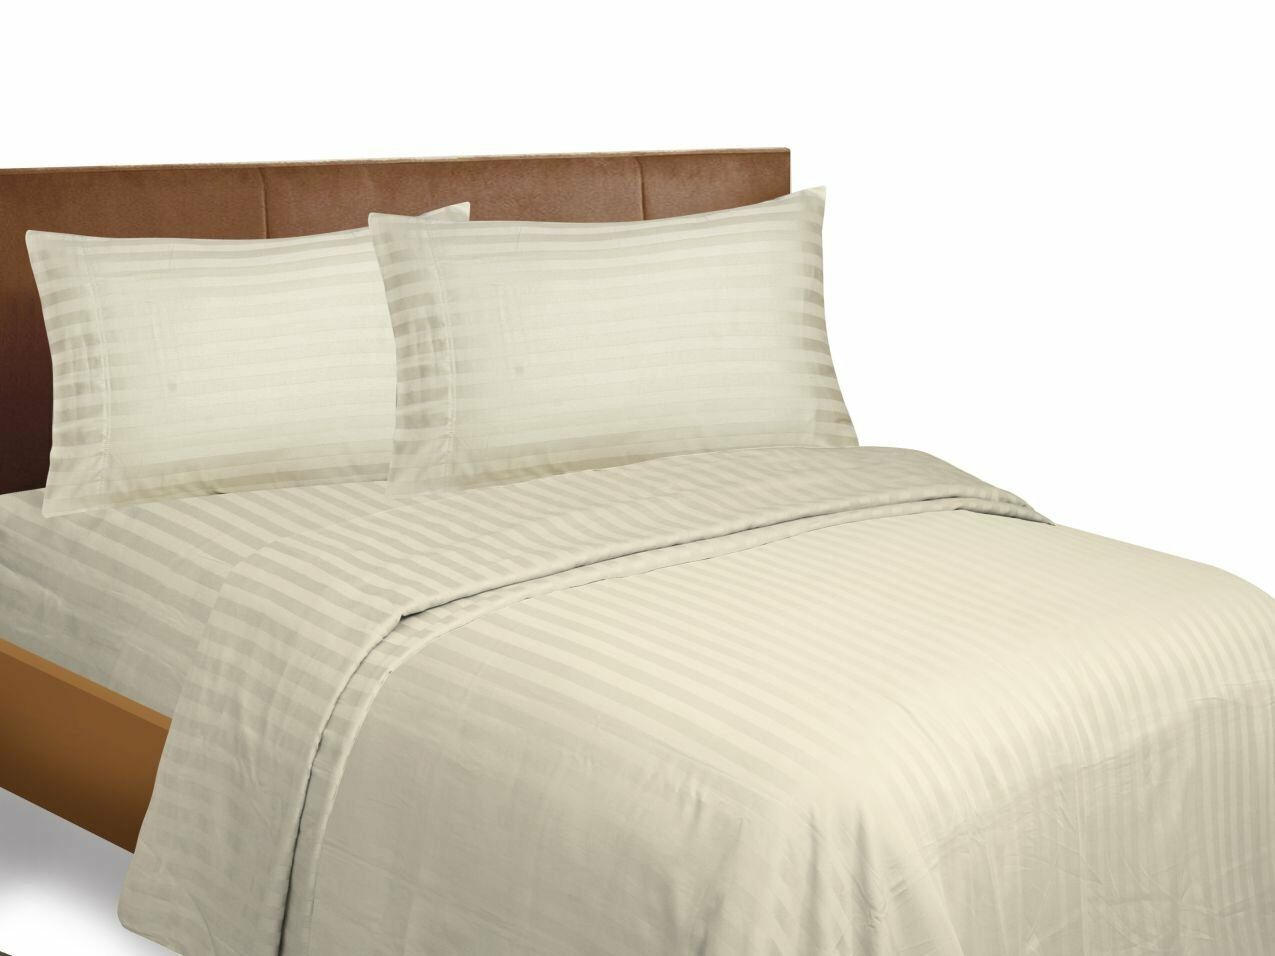 Bonne Nuit 500 Thread Count Hotel Collection Luxury Bedding Bed Sheets -